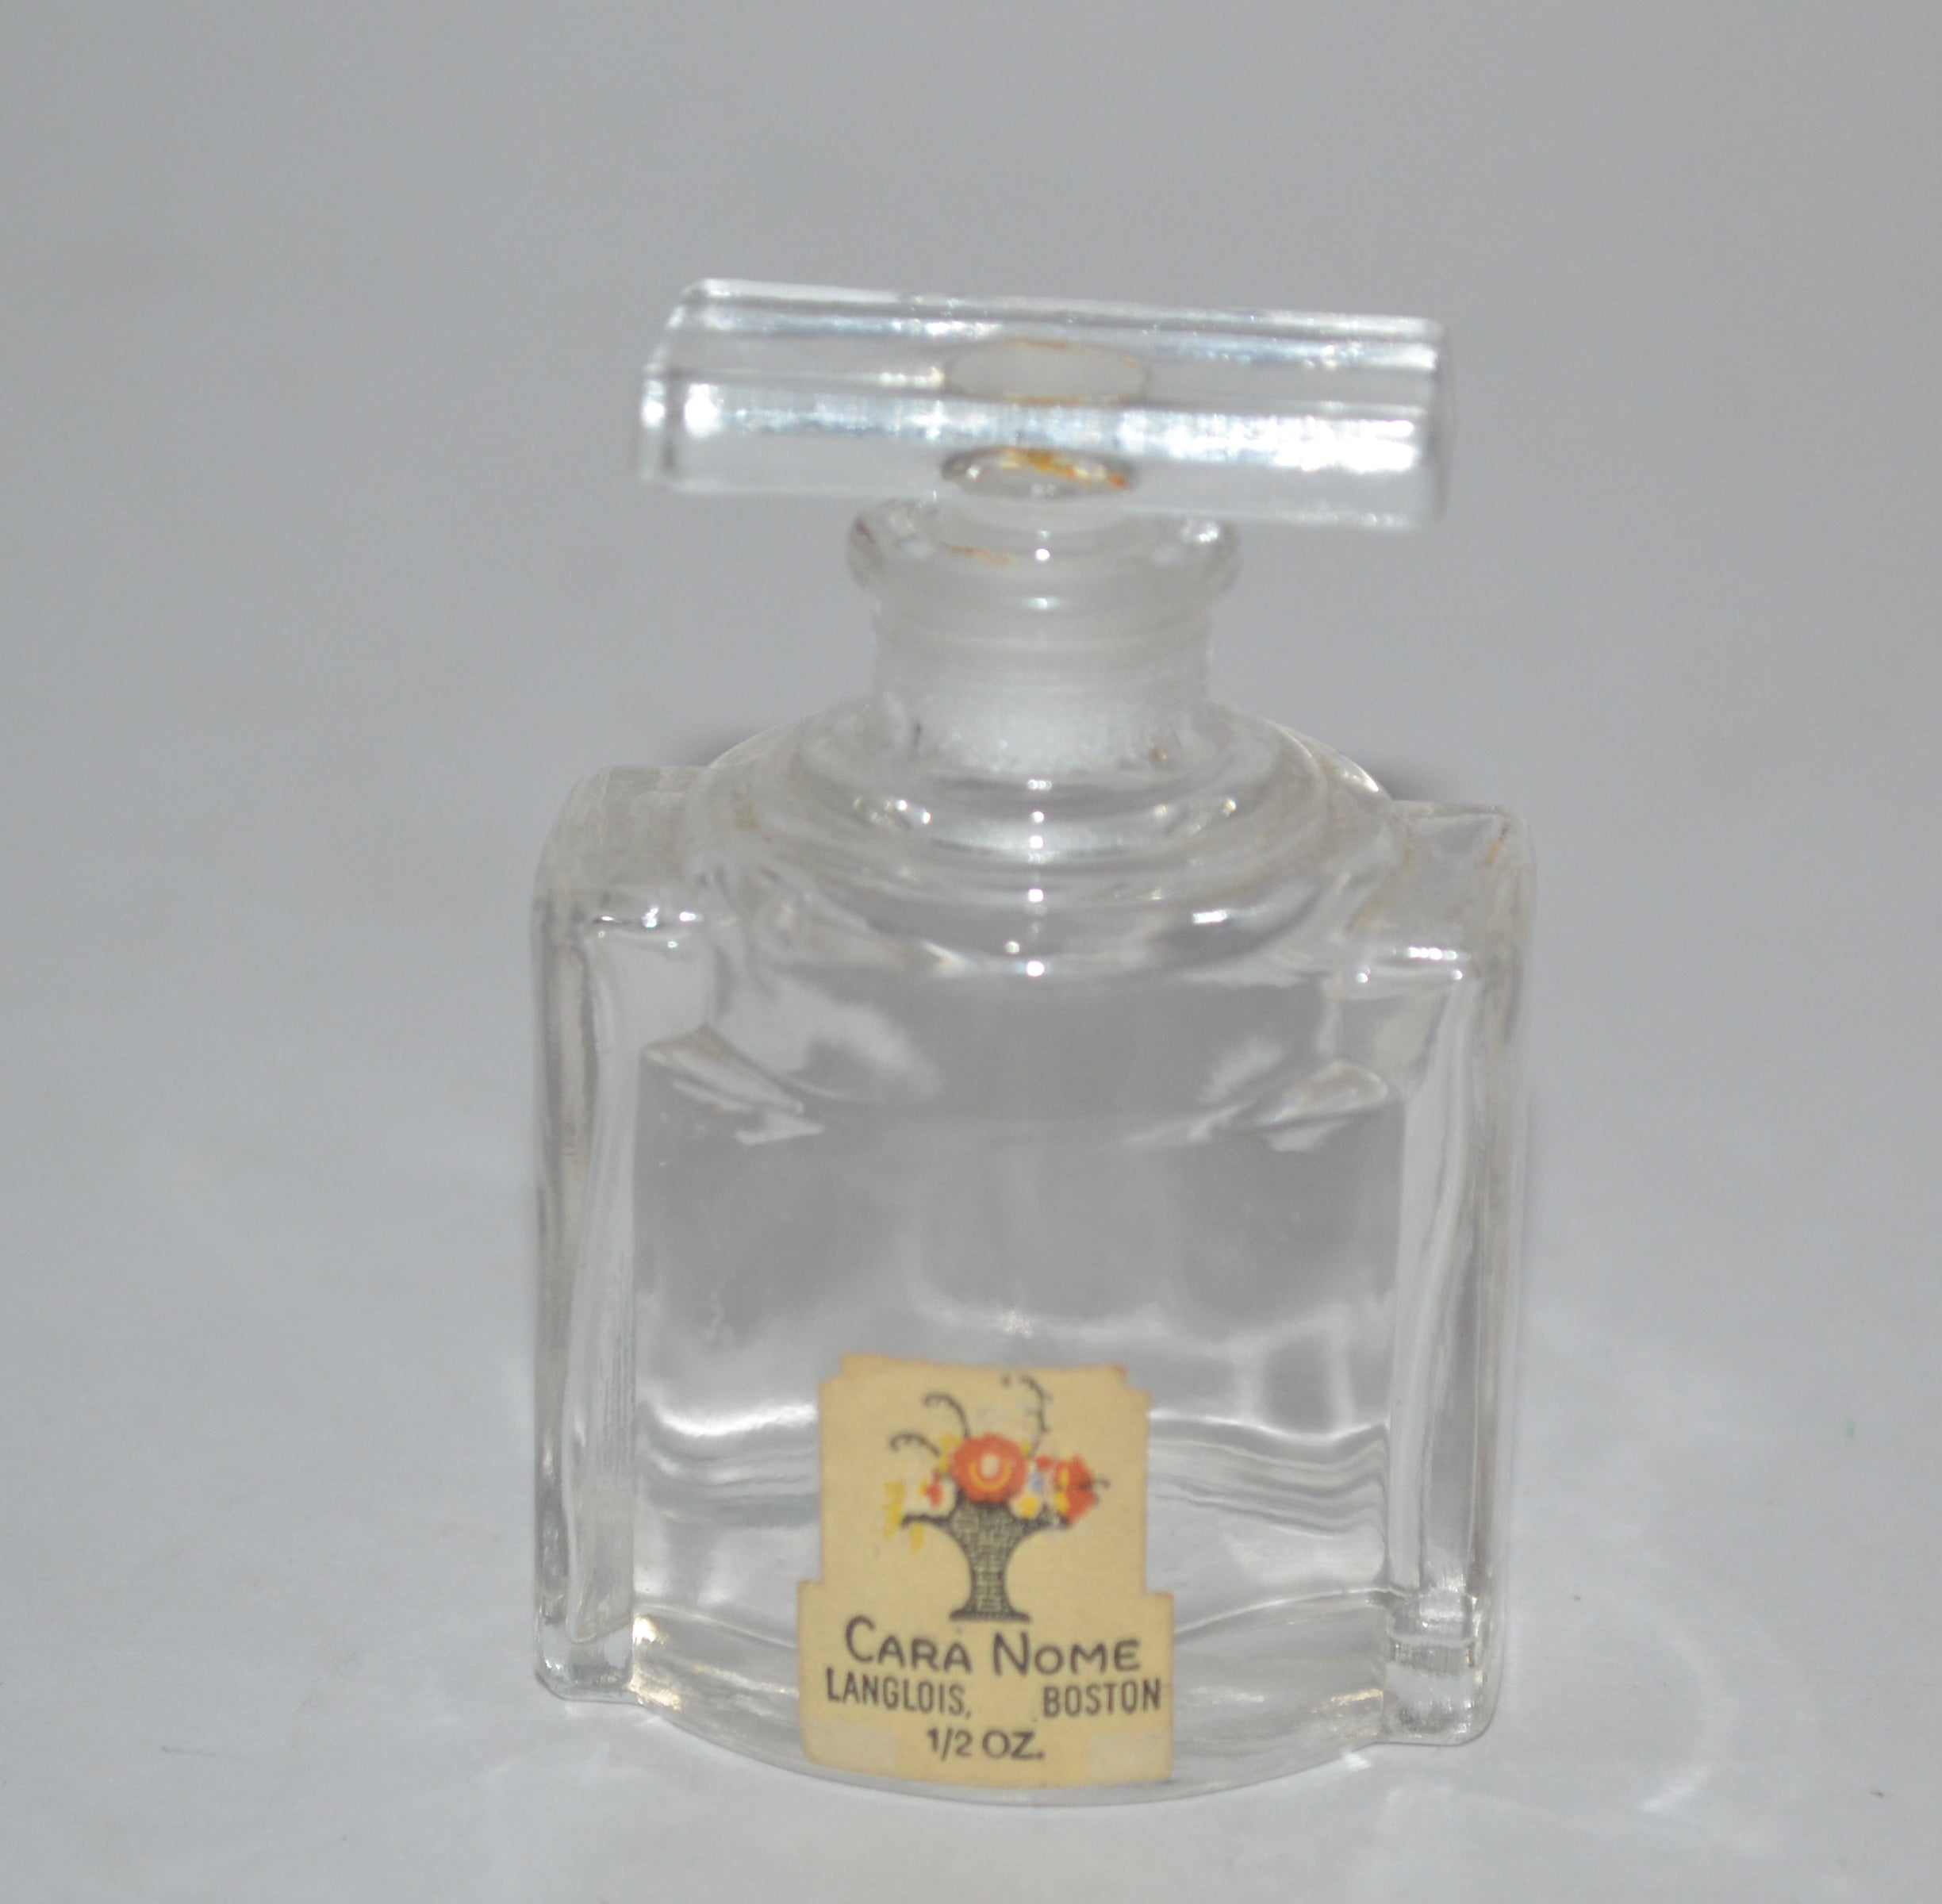 Vintage Langlois Perfume By Cara Nome